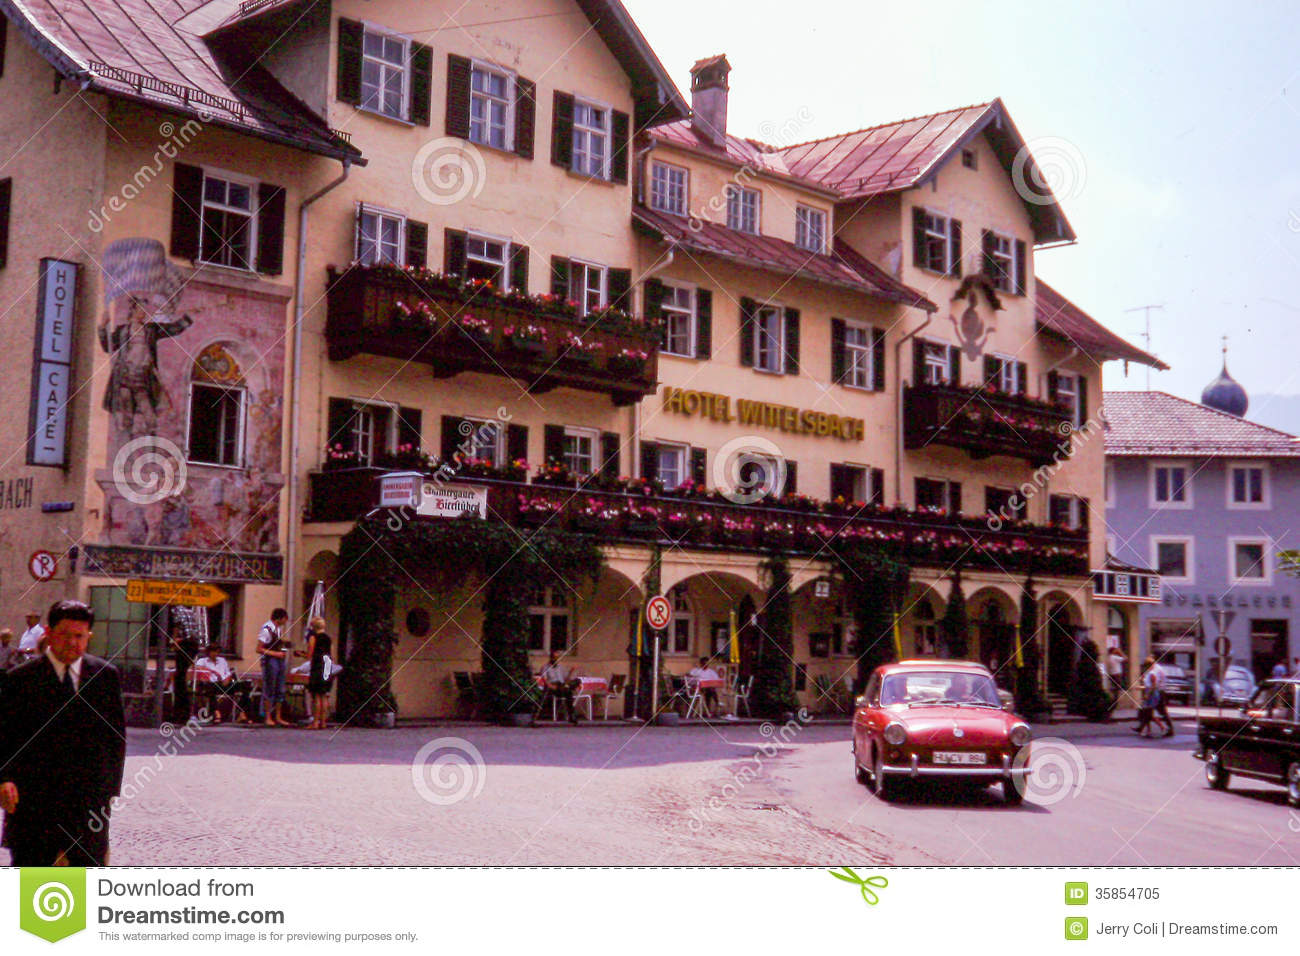 Hotel Wittelsbach, Berchtesgaden, Germany Editorial Image.